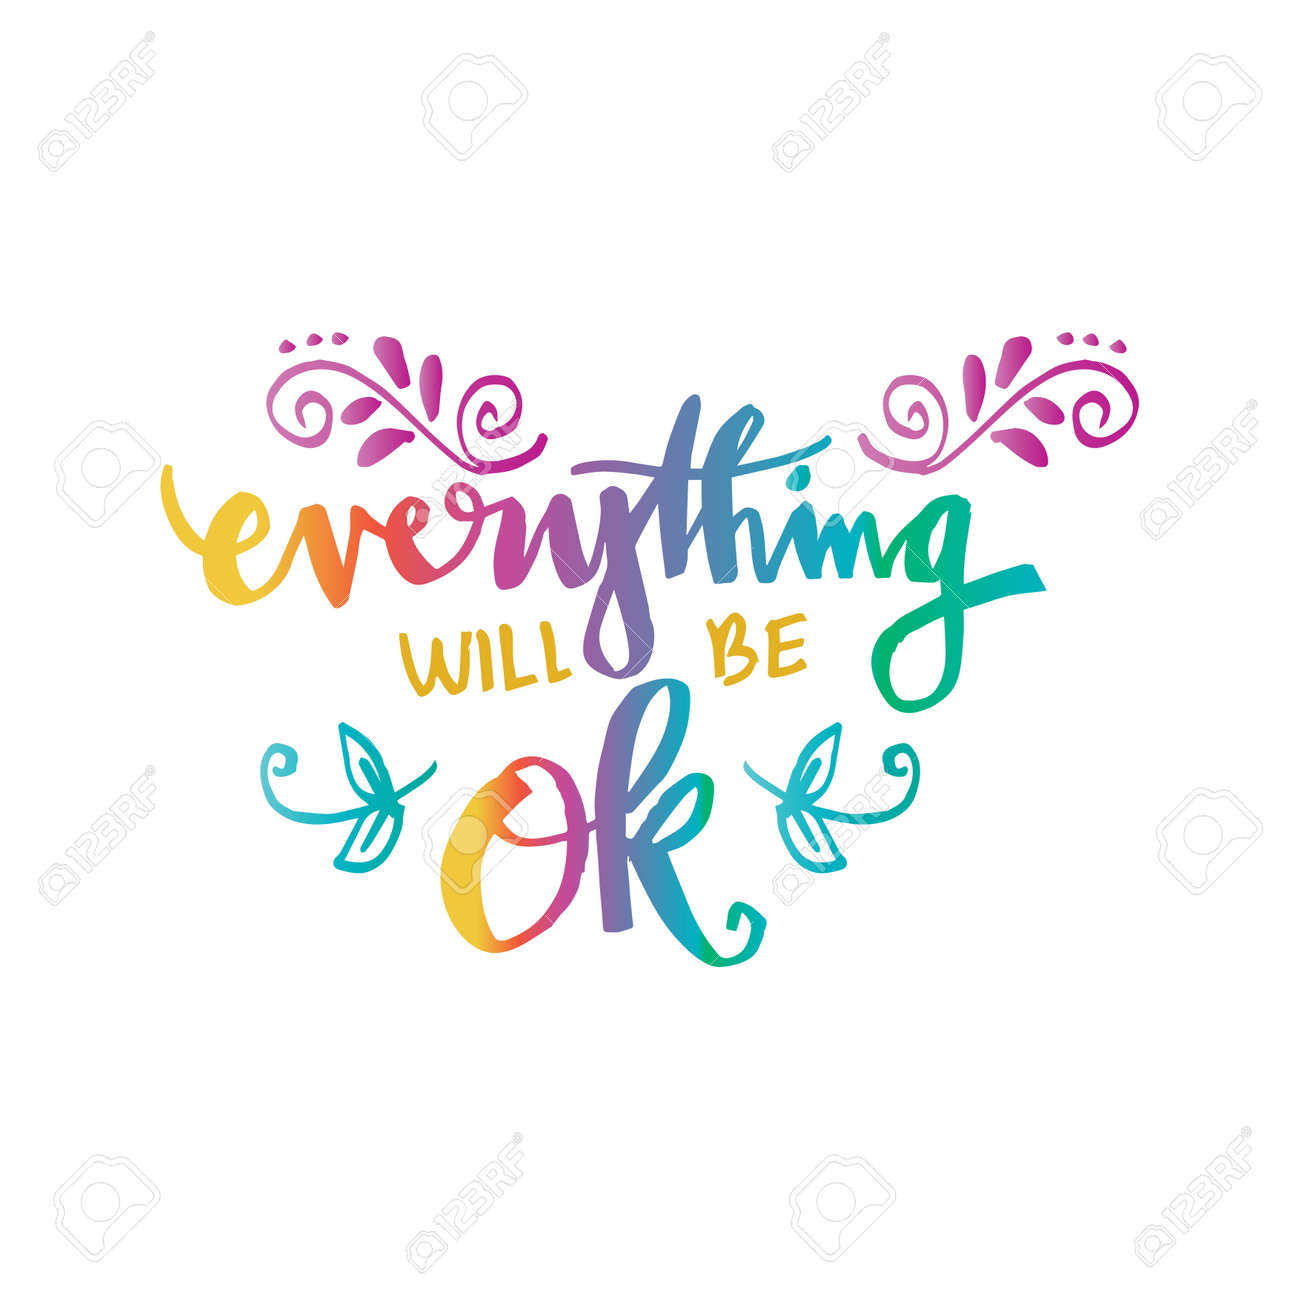 Everything Will Be Ok Motivational Quote Royalty Free Cliparts